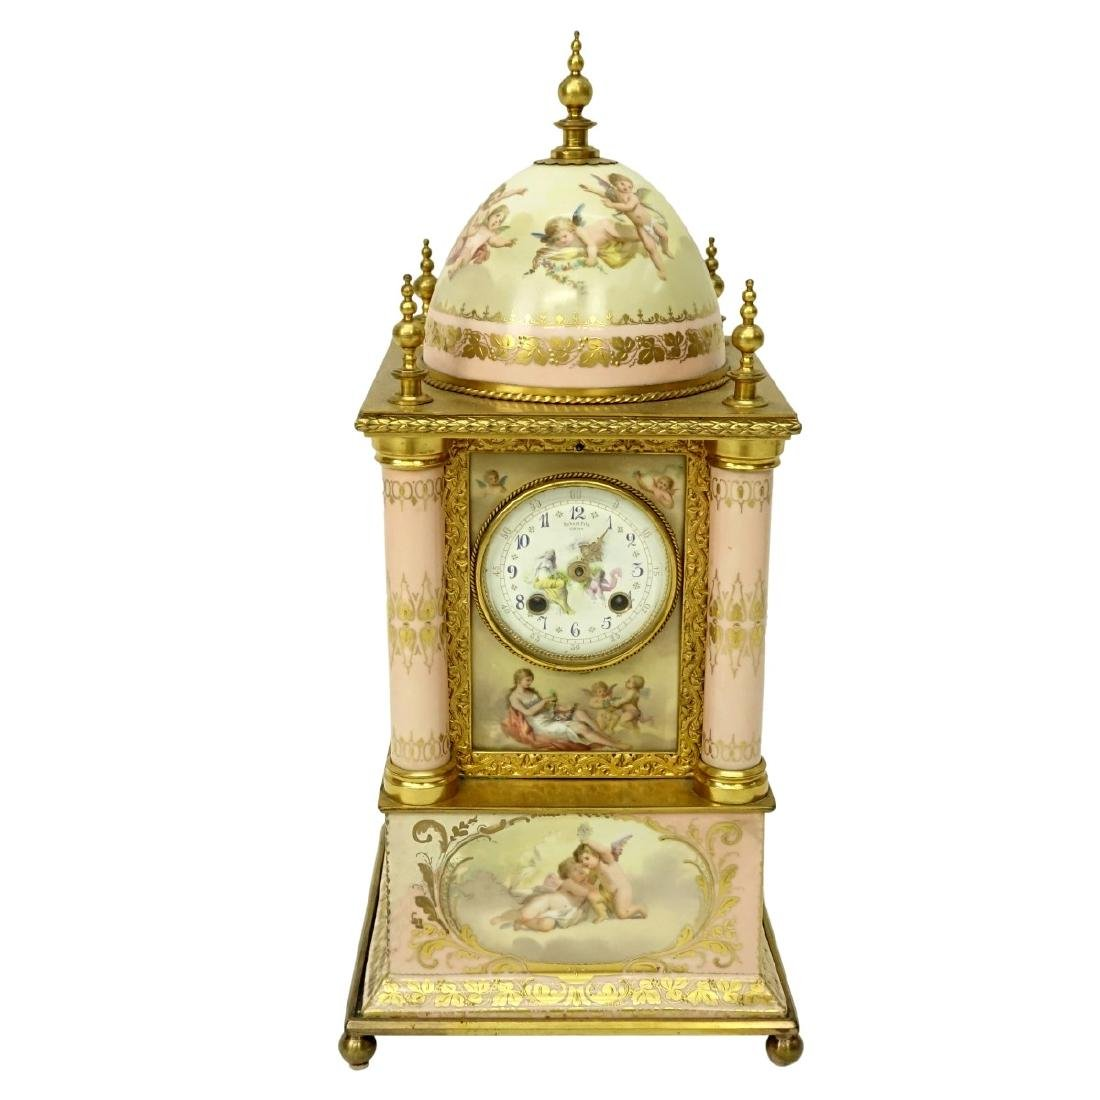 19th C. Royal Vienna Porcelain Mantle Clock